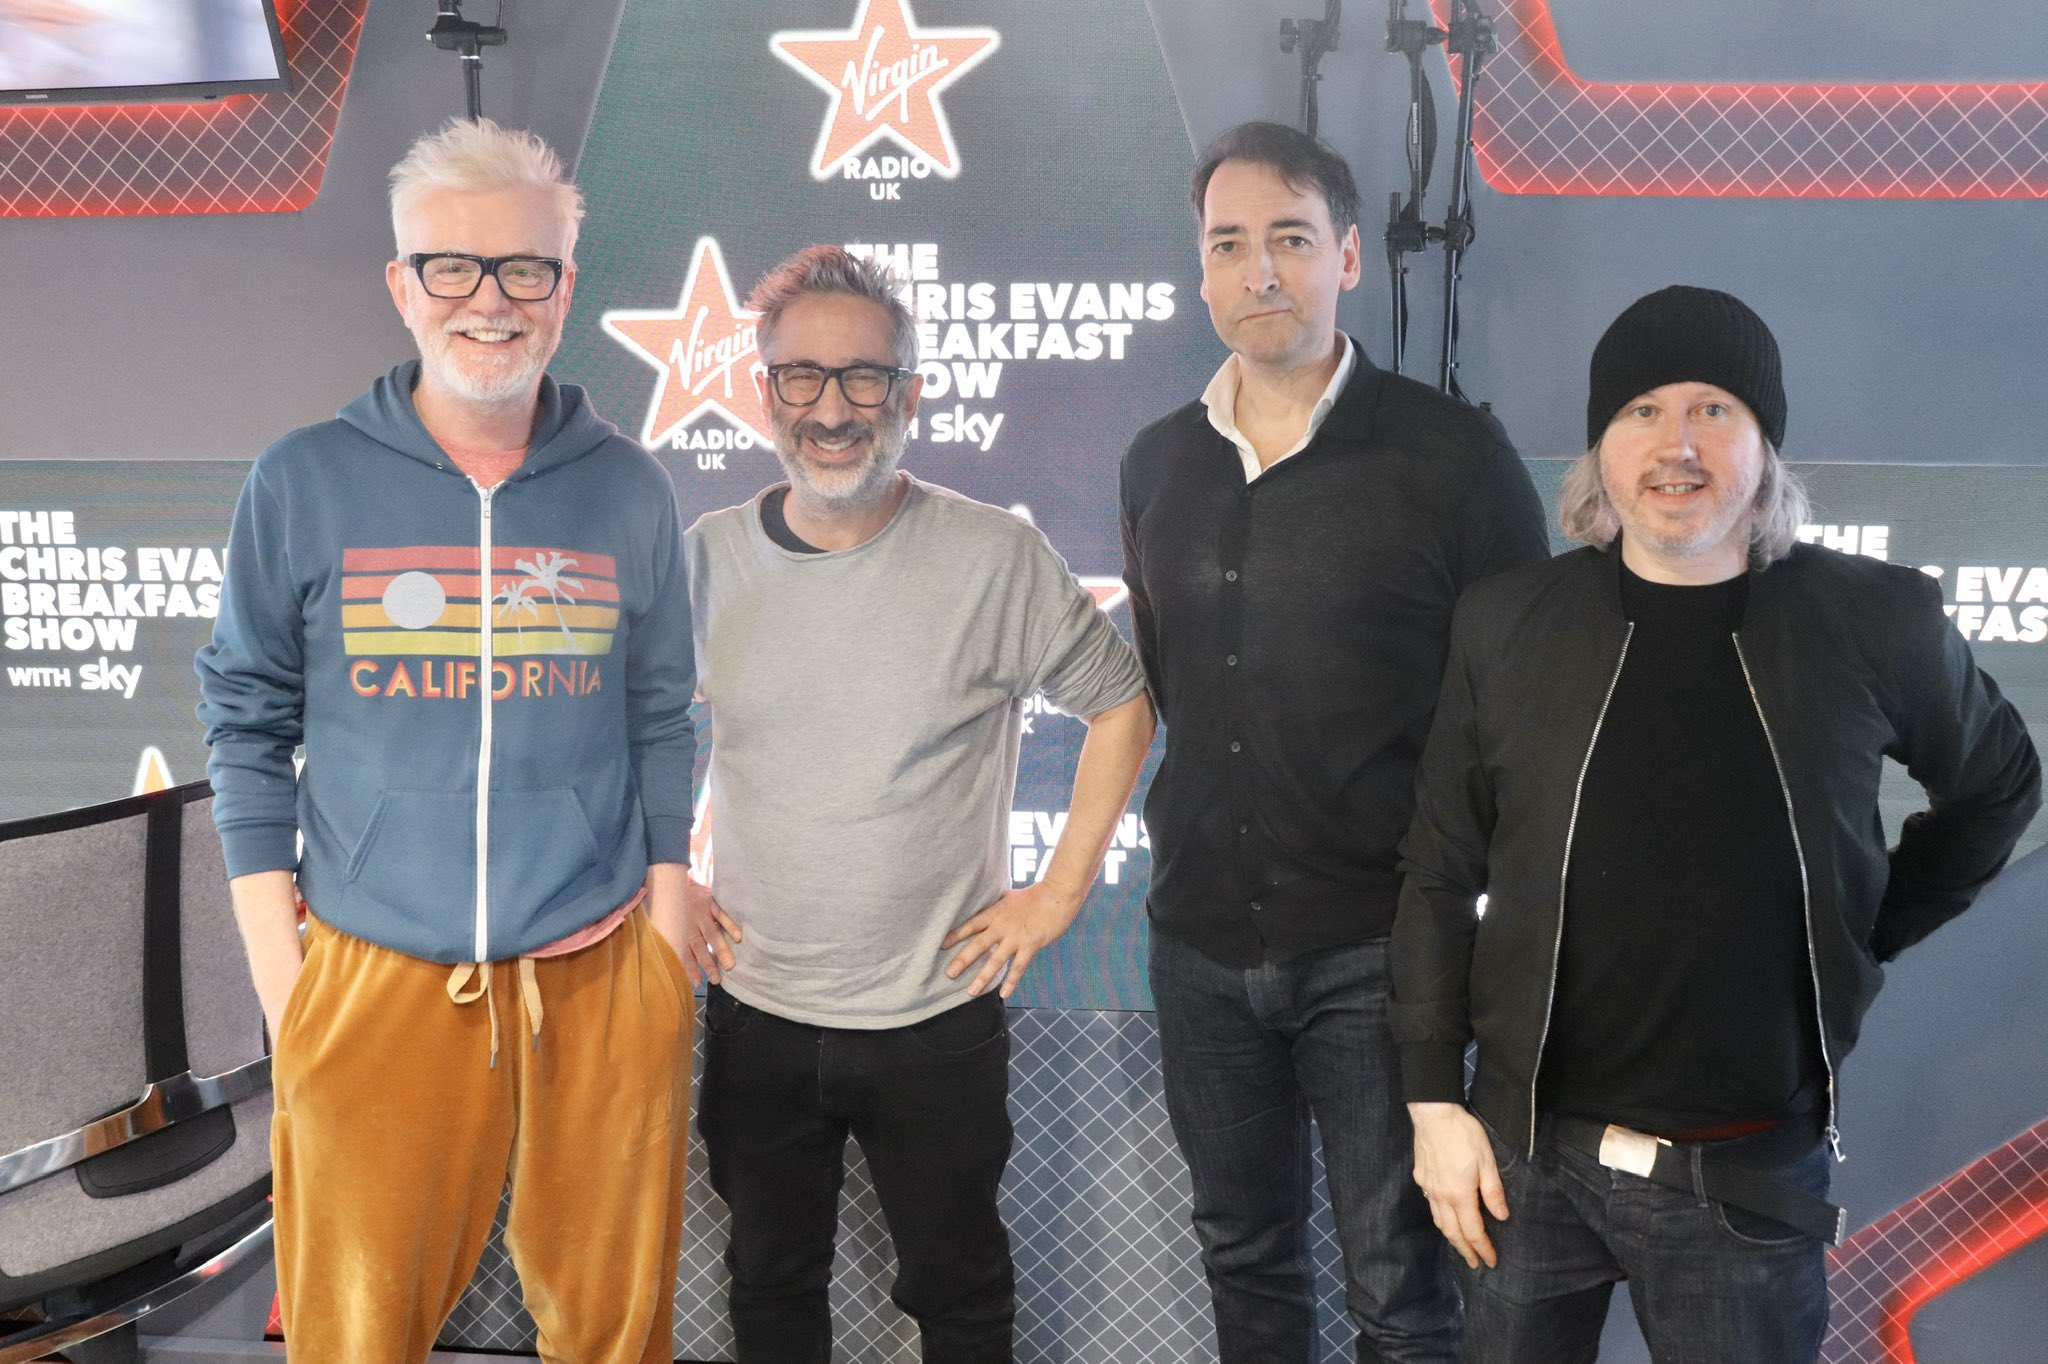 Le Live de la semaine – Badly Drawn Boy – This Is The Day (Live On The Chris Evans Breakfast Show with Sky)